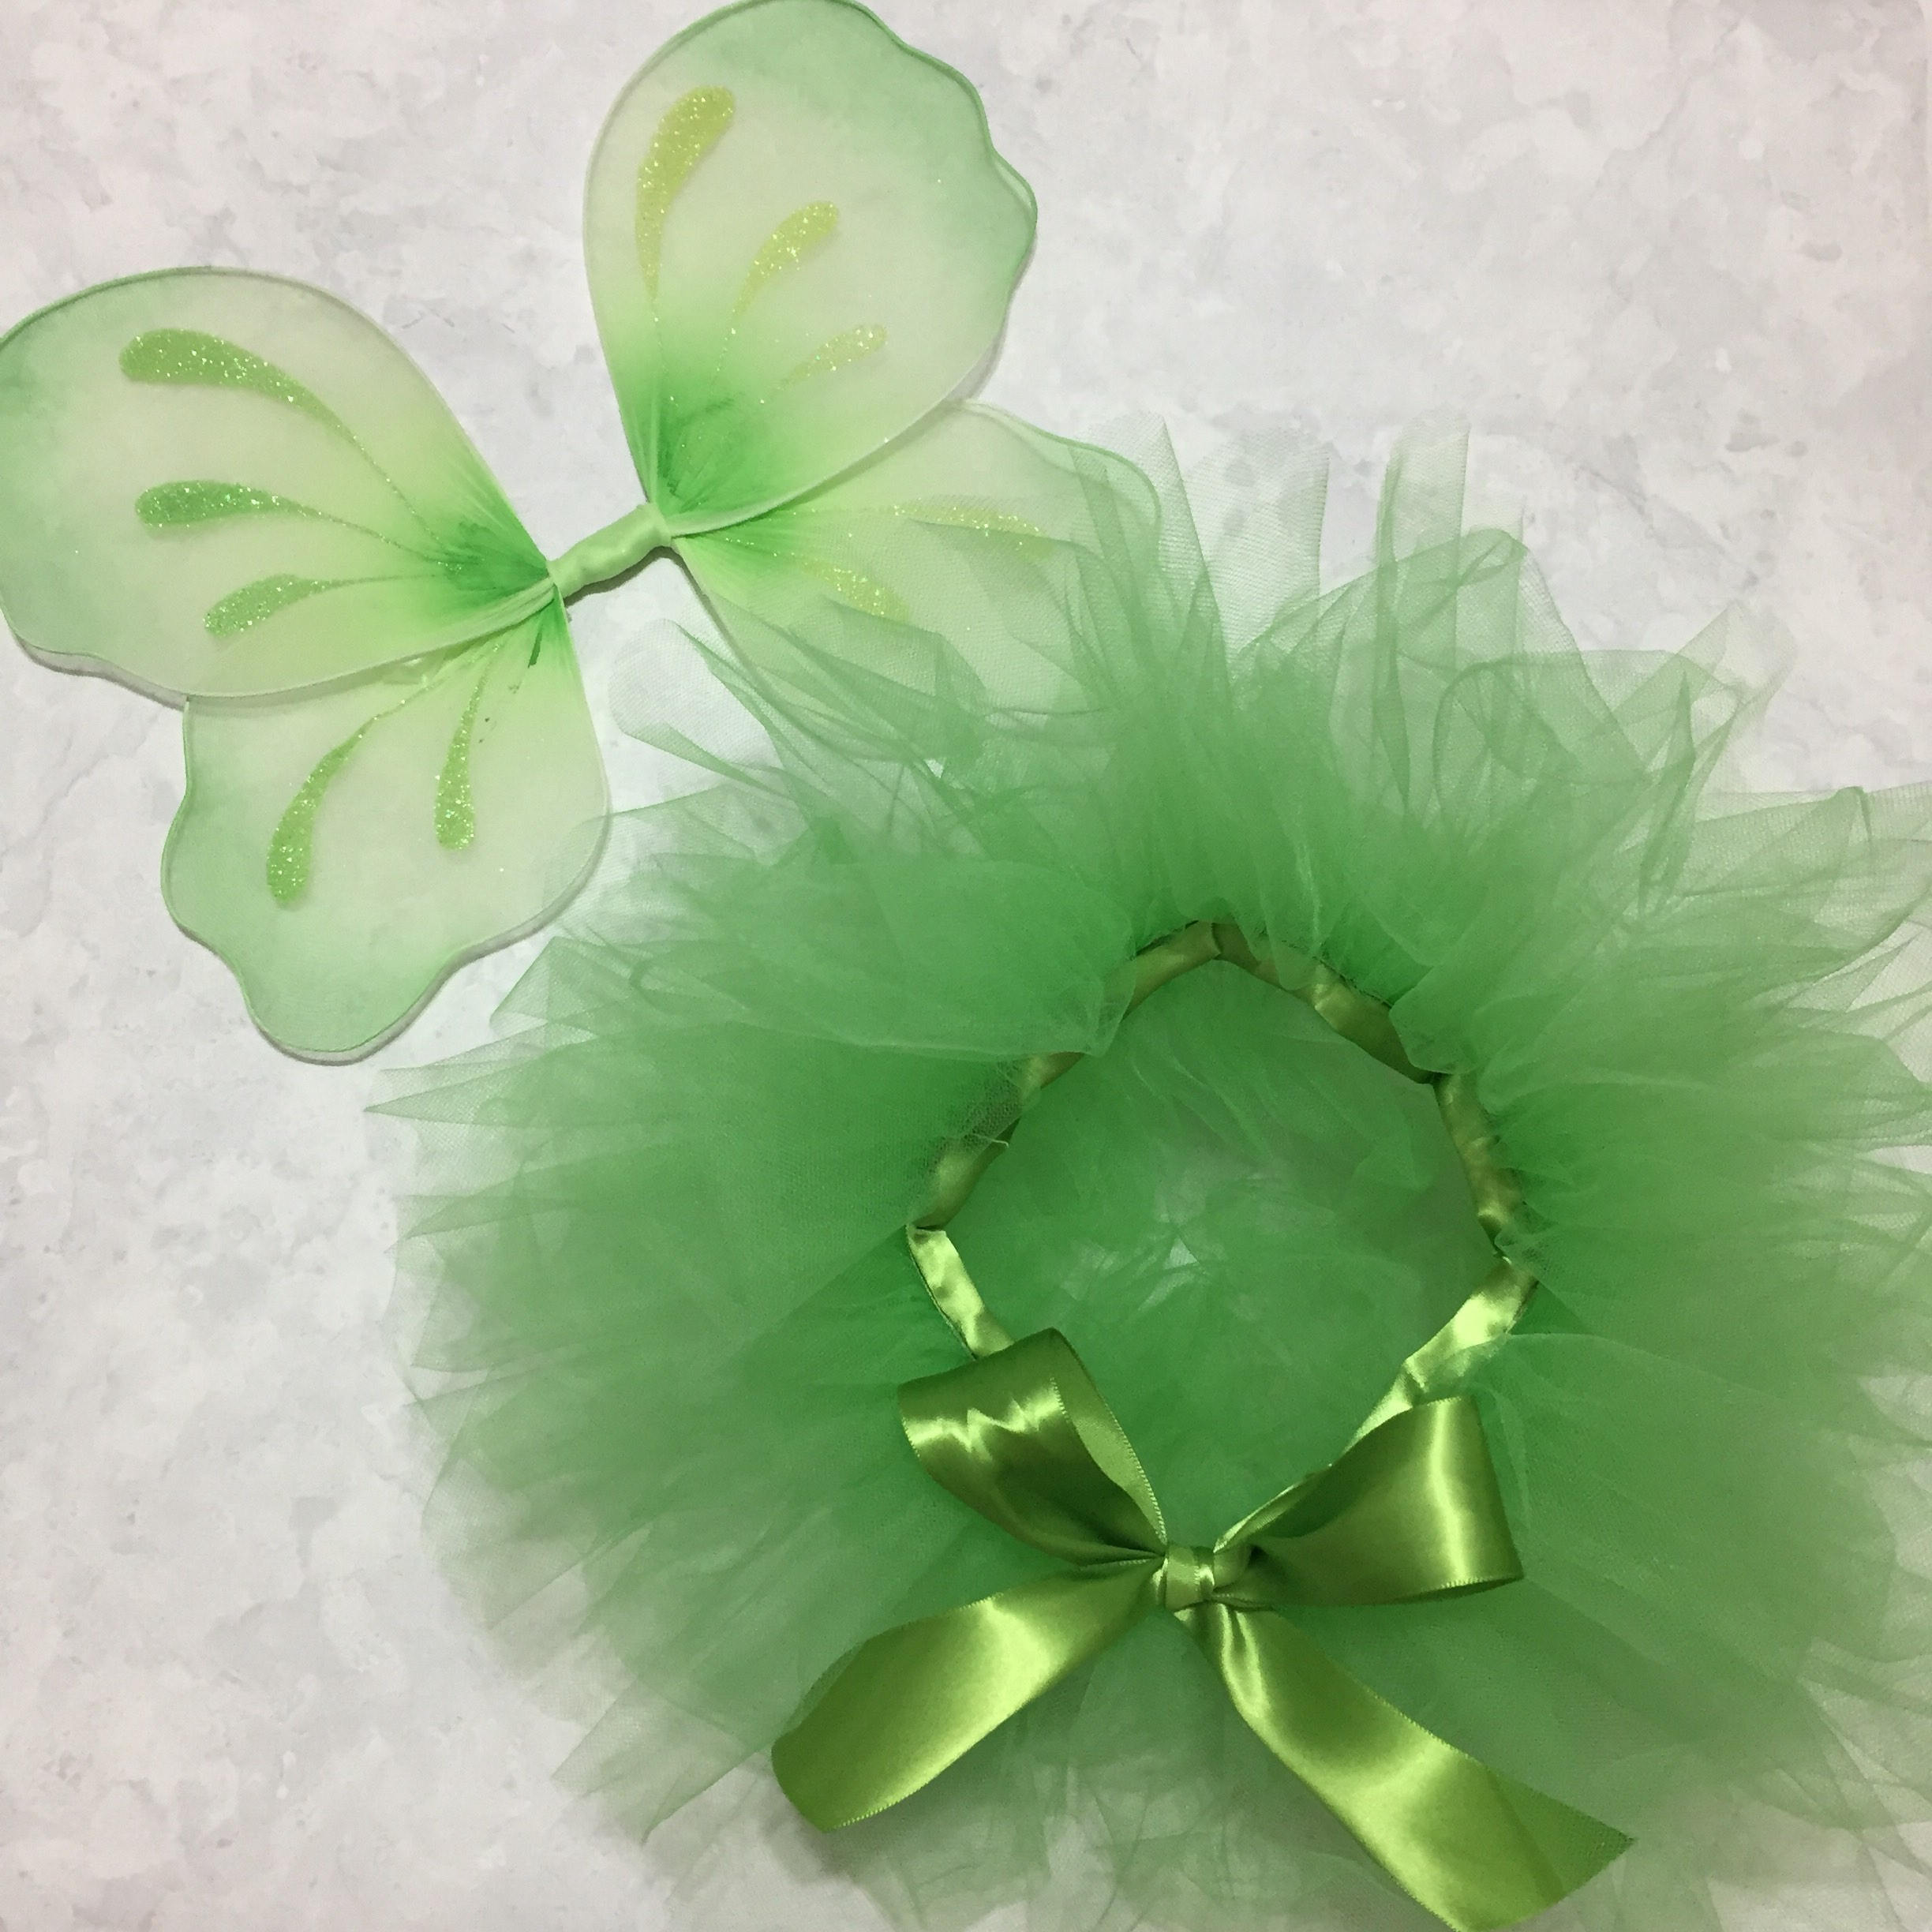 Green Fairy Wings & Tutu Set Tinkerbell Halloween Costume Pixie Hollow Dress Up Fairytale Princess Photo Prop First Birthday Outfit Ideas